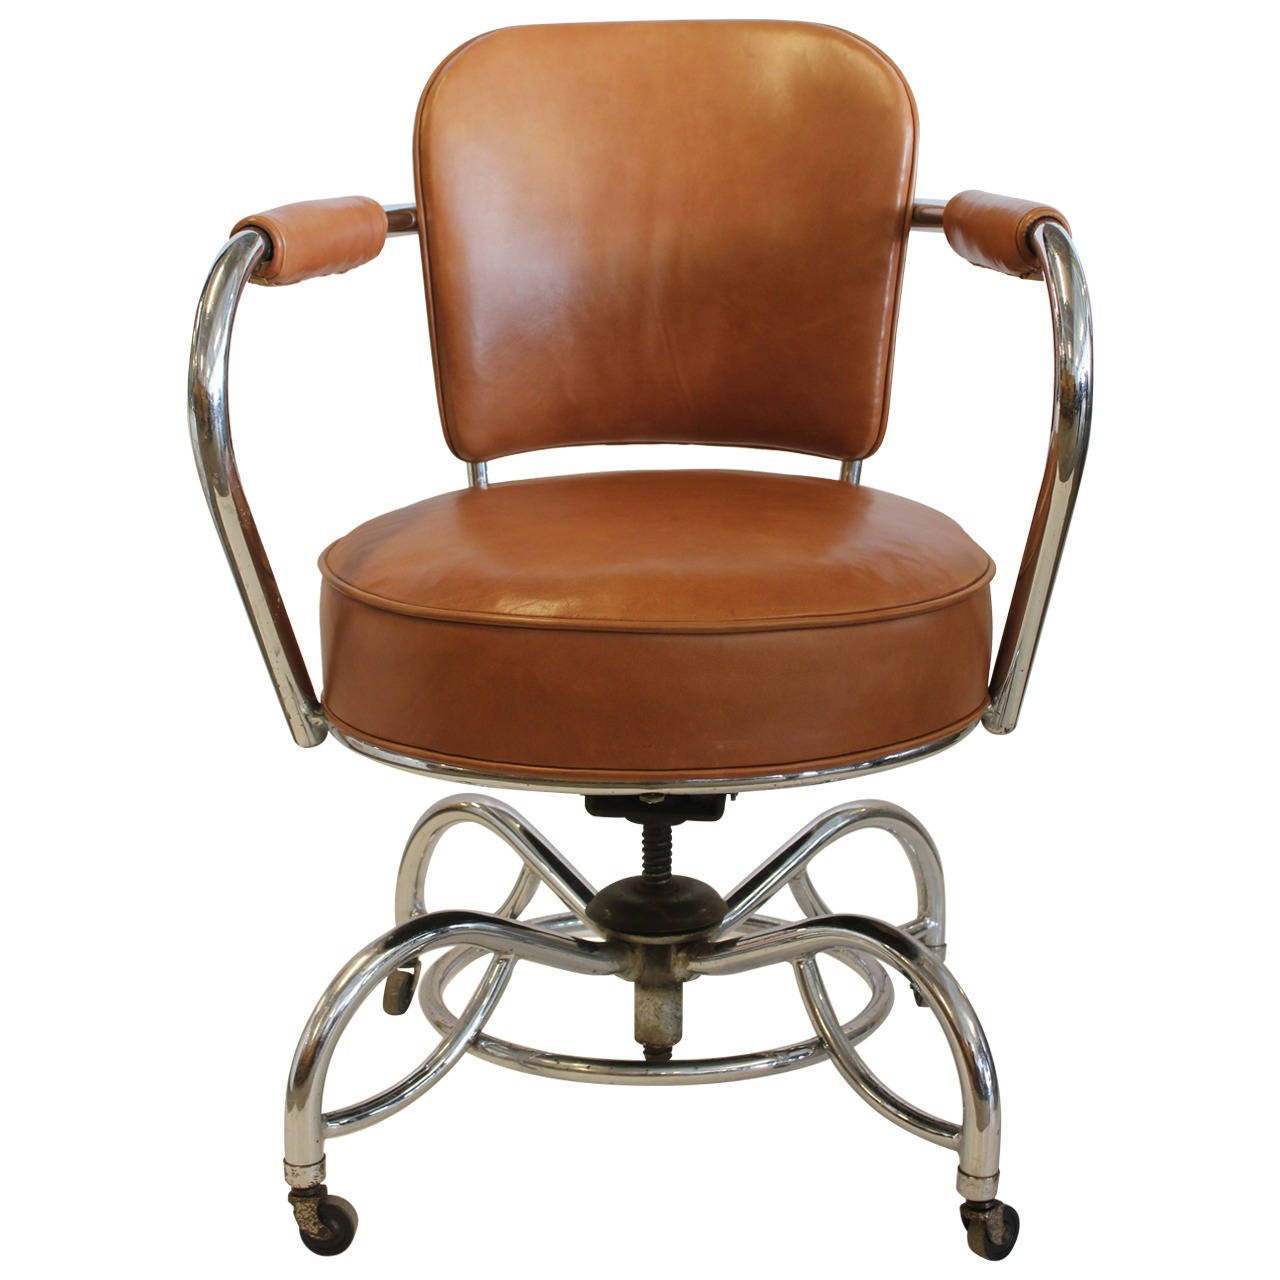 Stylish Chairs Stylish Art Deco Leather And Chrome Desk Chair At 1stdibs